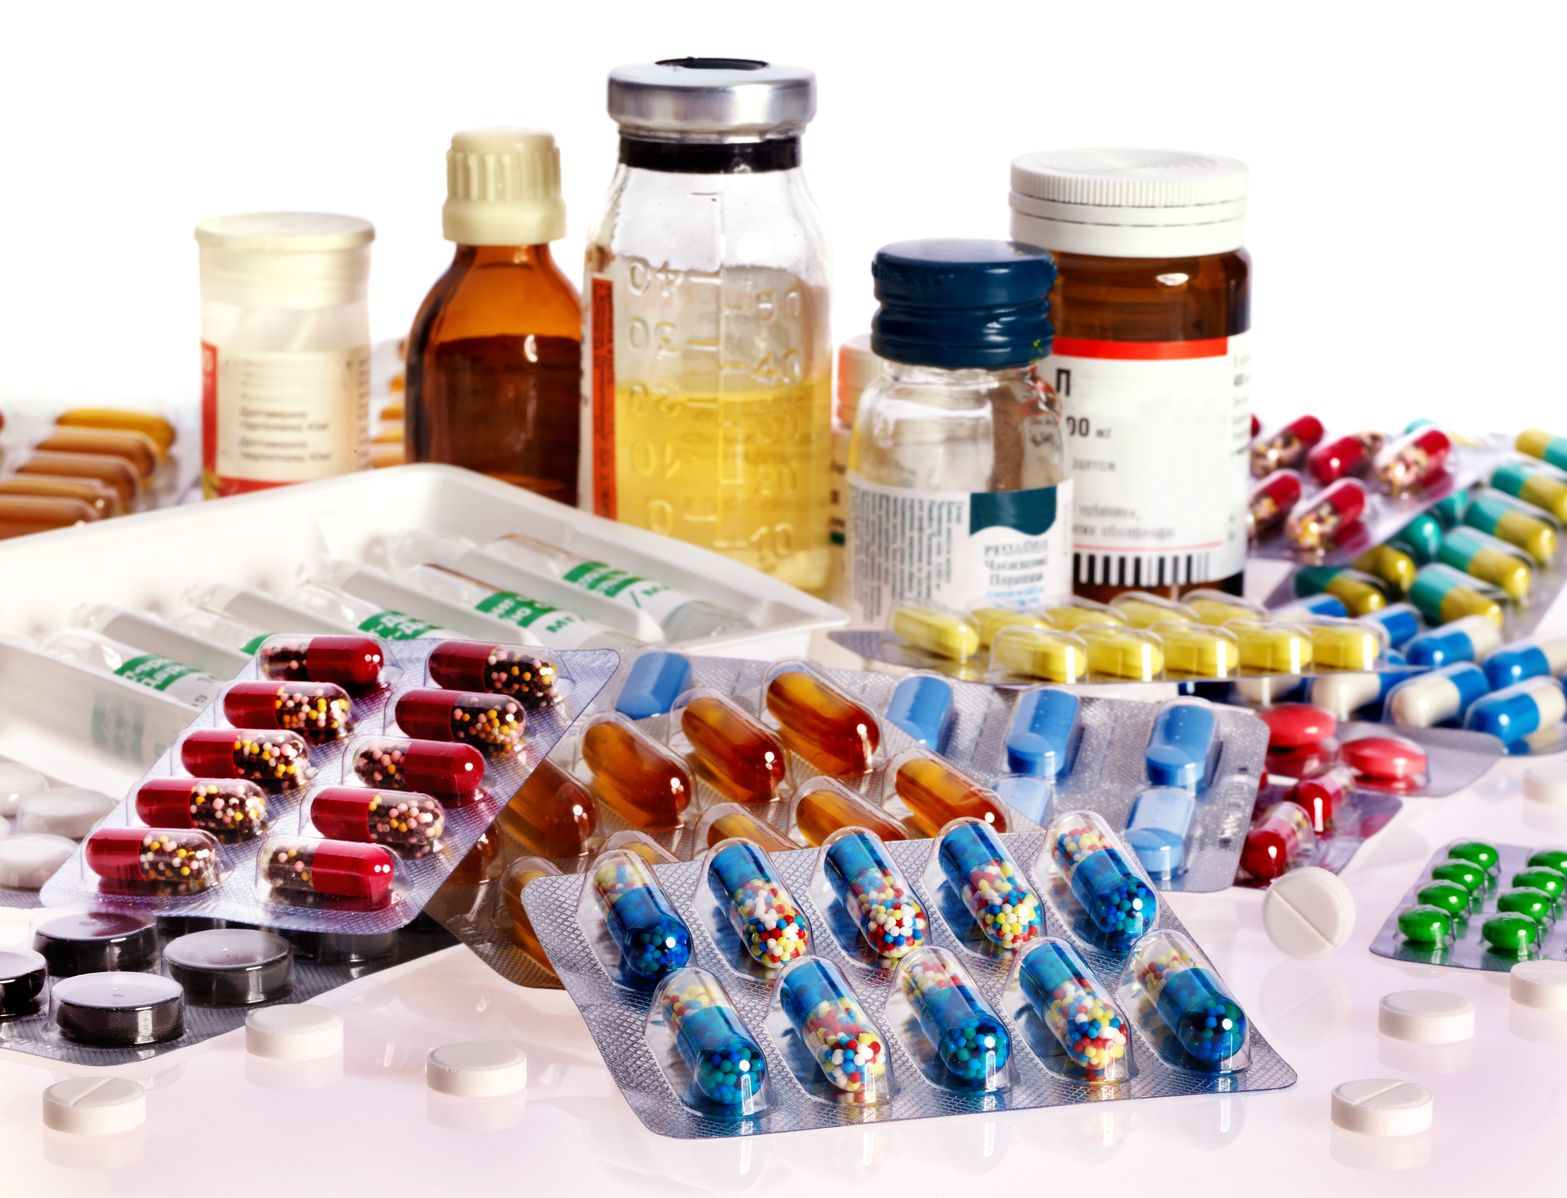 pharmaceuticals market in india